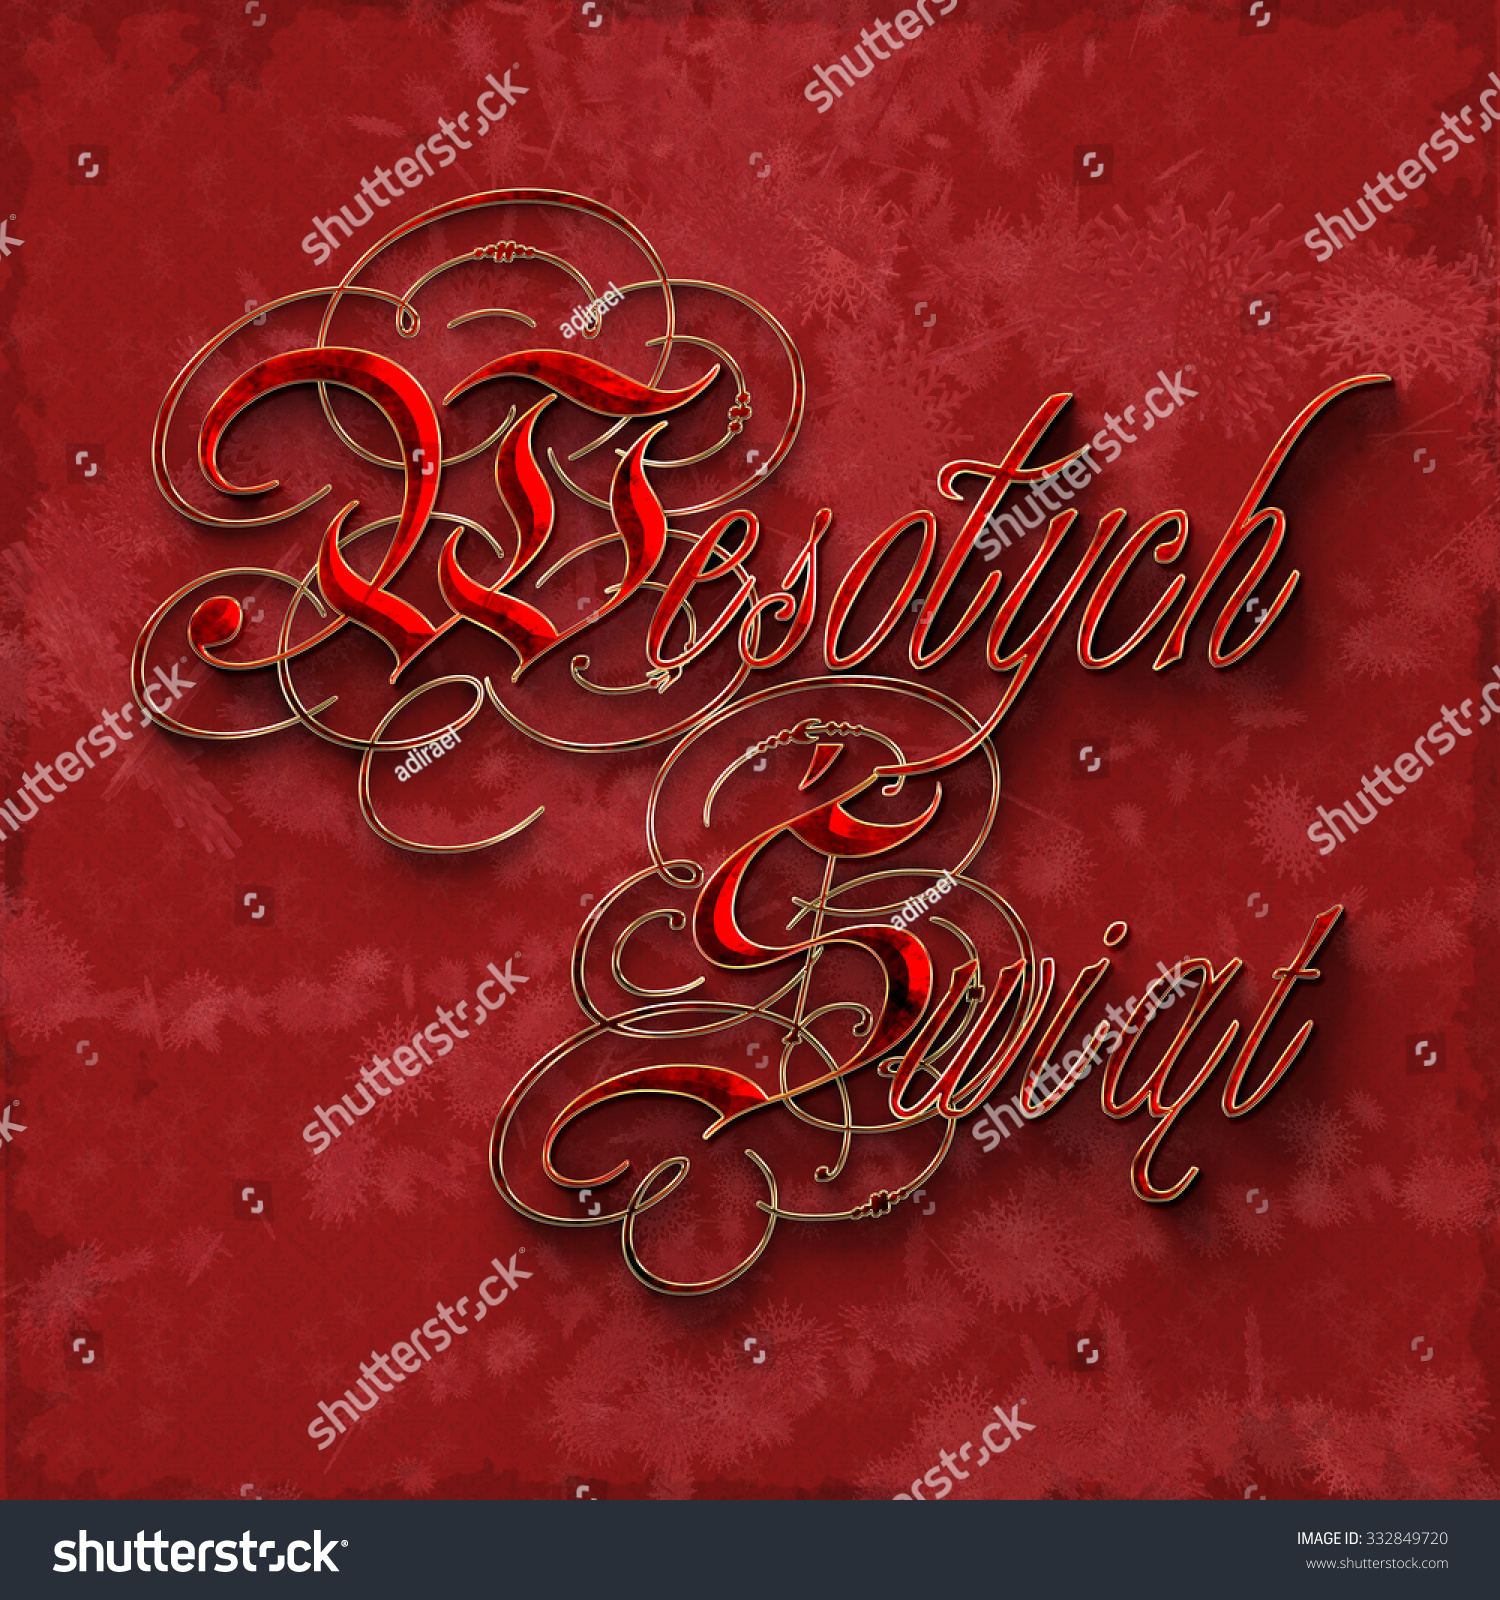 merry christmas decorative lettering on polish language - How To Say Merry Christmas In Polish